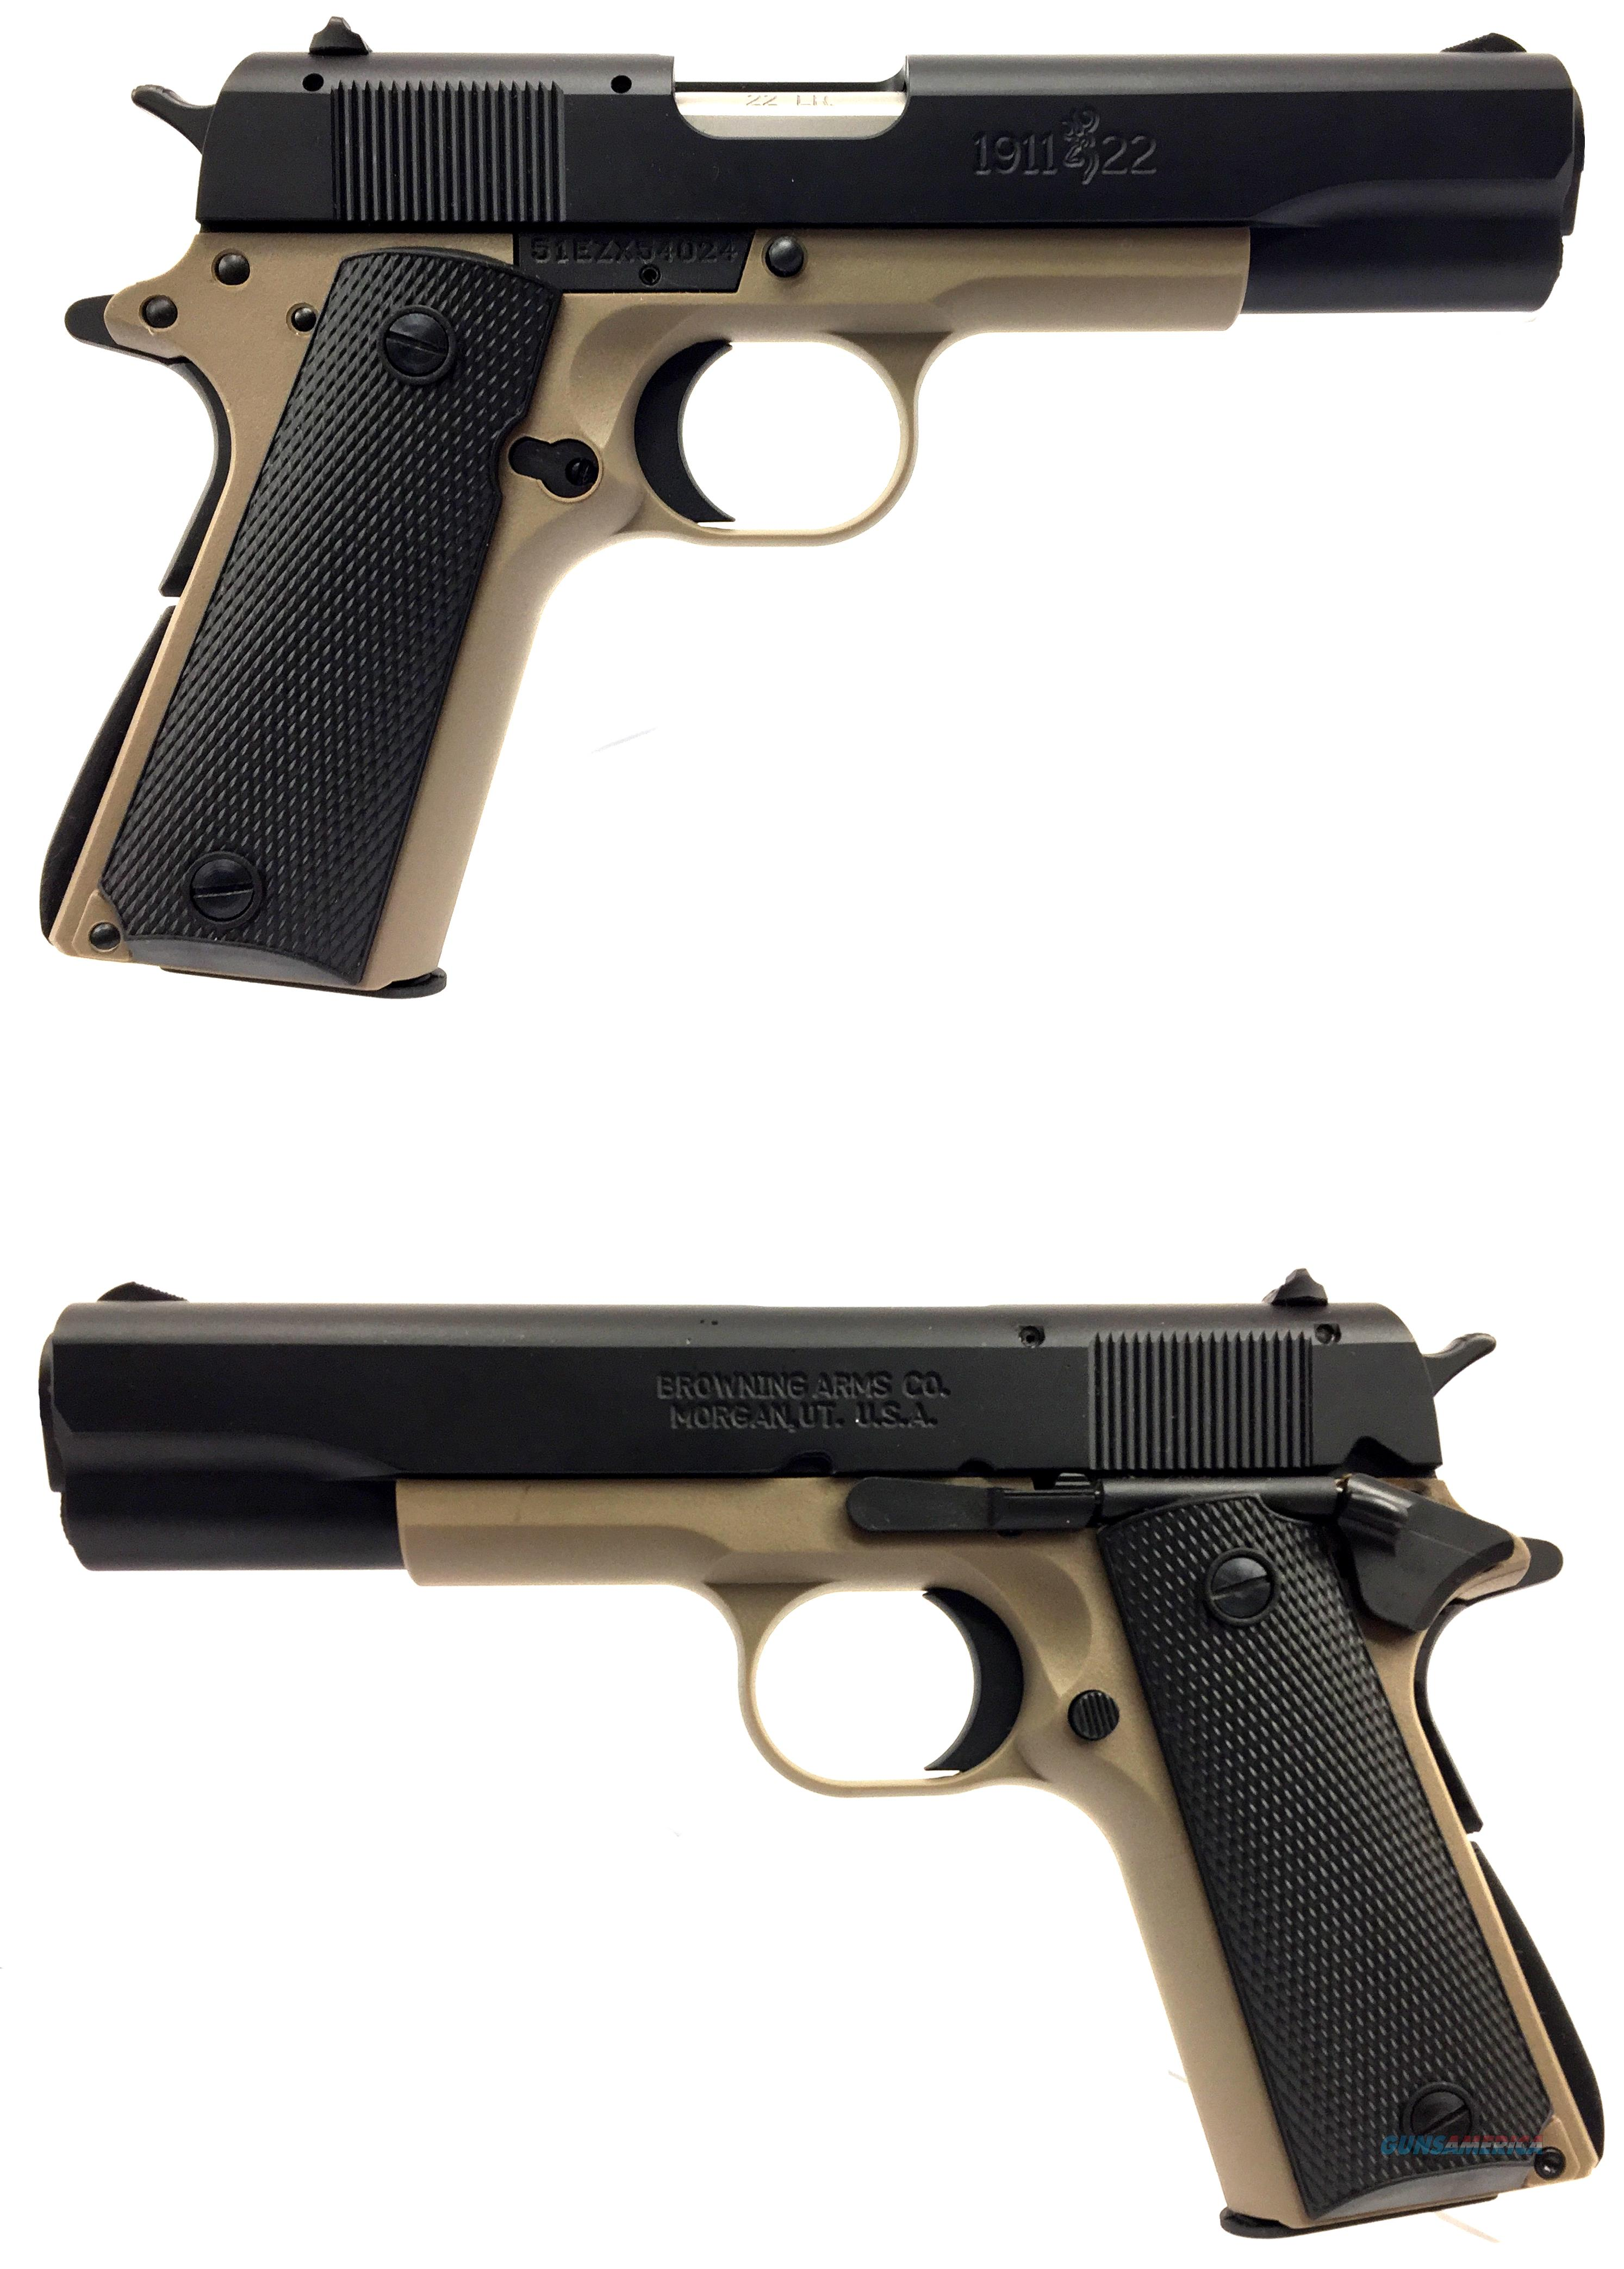 Browning Desert Tan 1911-.22lr  Guns > Pistols > Browning Pistols > Other Autos